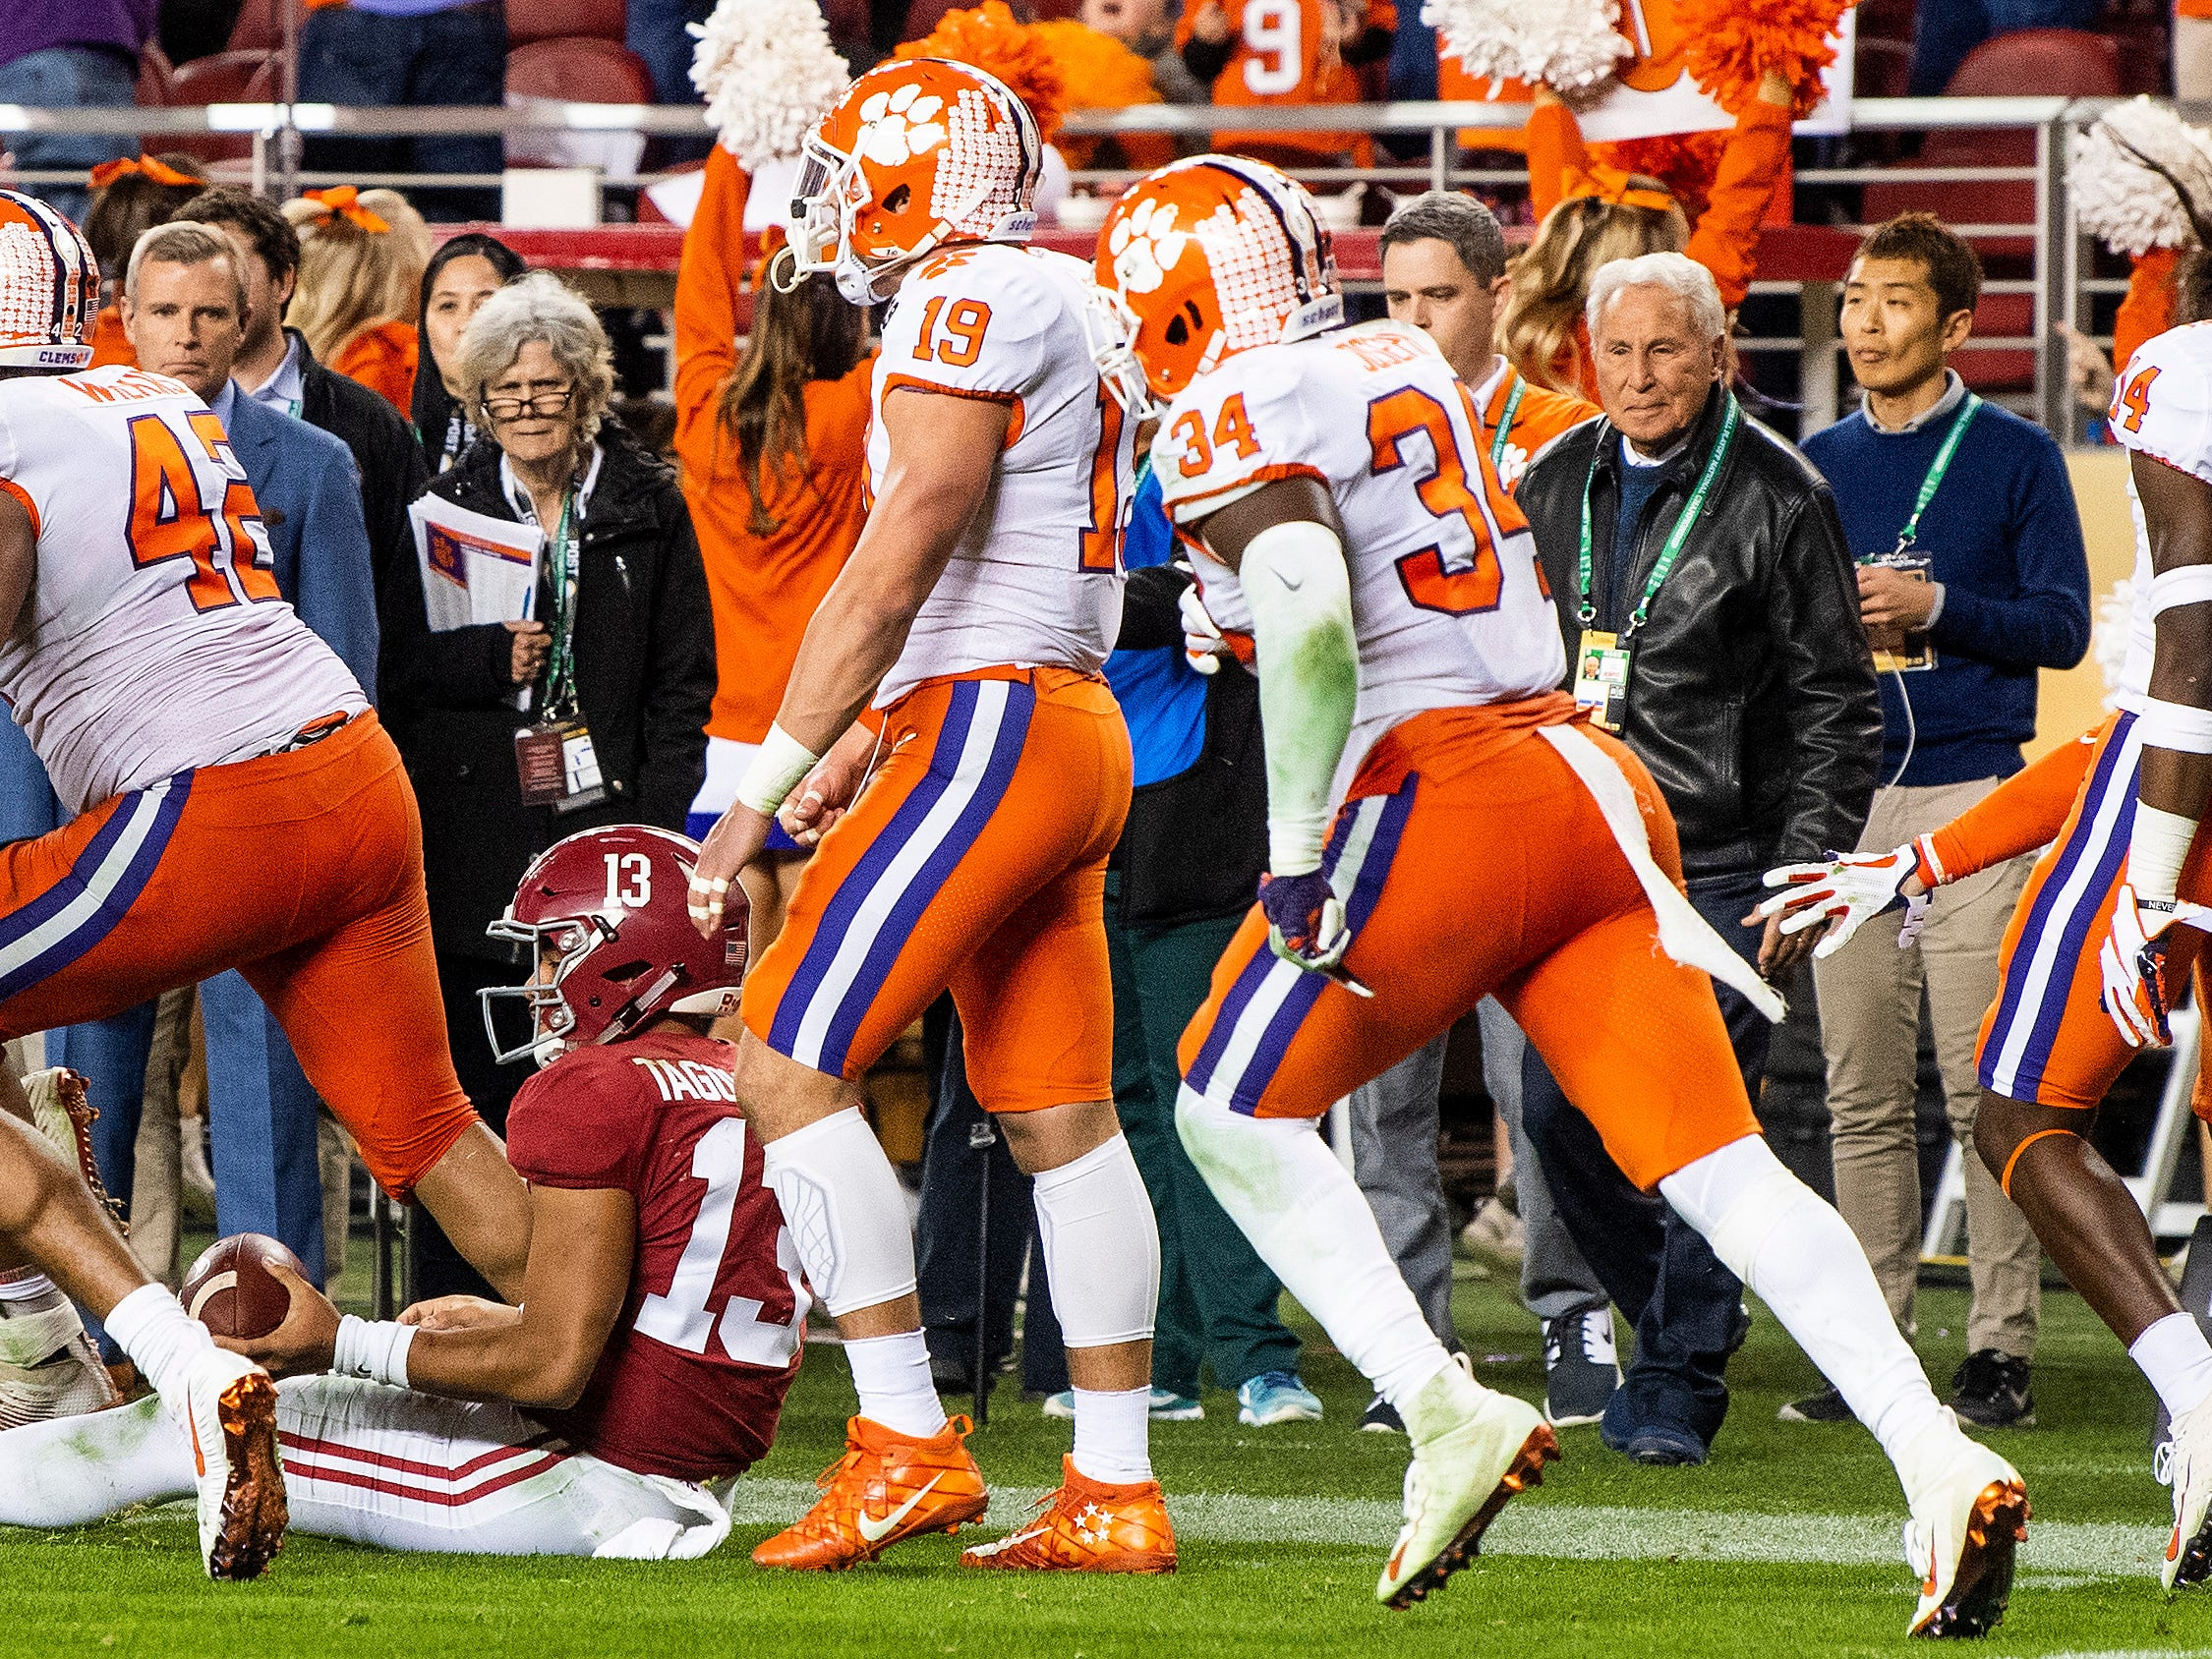 The Clemson defense runs off the field after stopping Alabama quarterback Tua Tagovailoa (13) on a fourth down play In second half action of the College Football Playoff National Championship game at Levi's Stadium in Santa Clara, Ca., on Monday January 7, 2019.